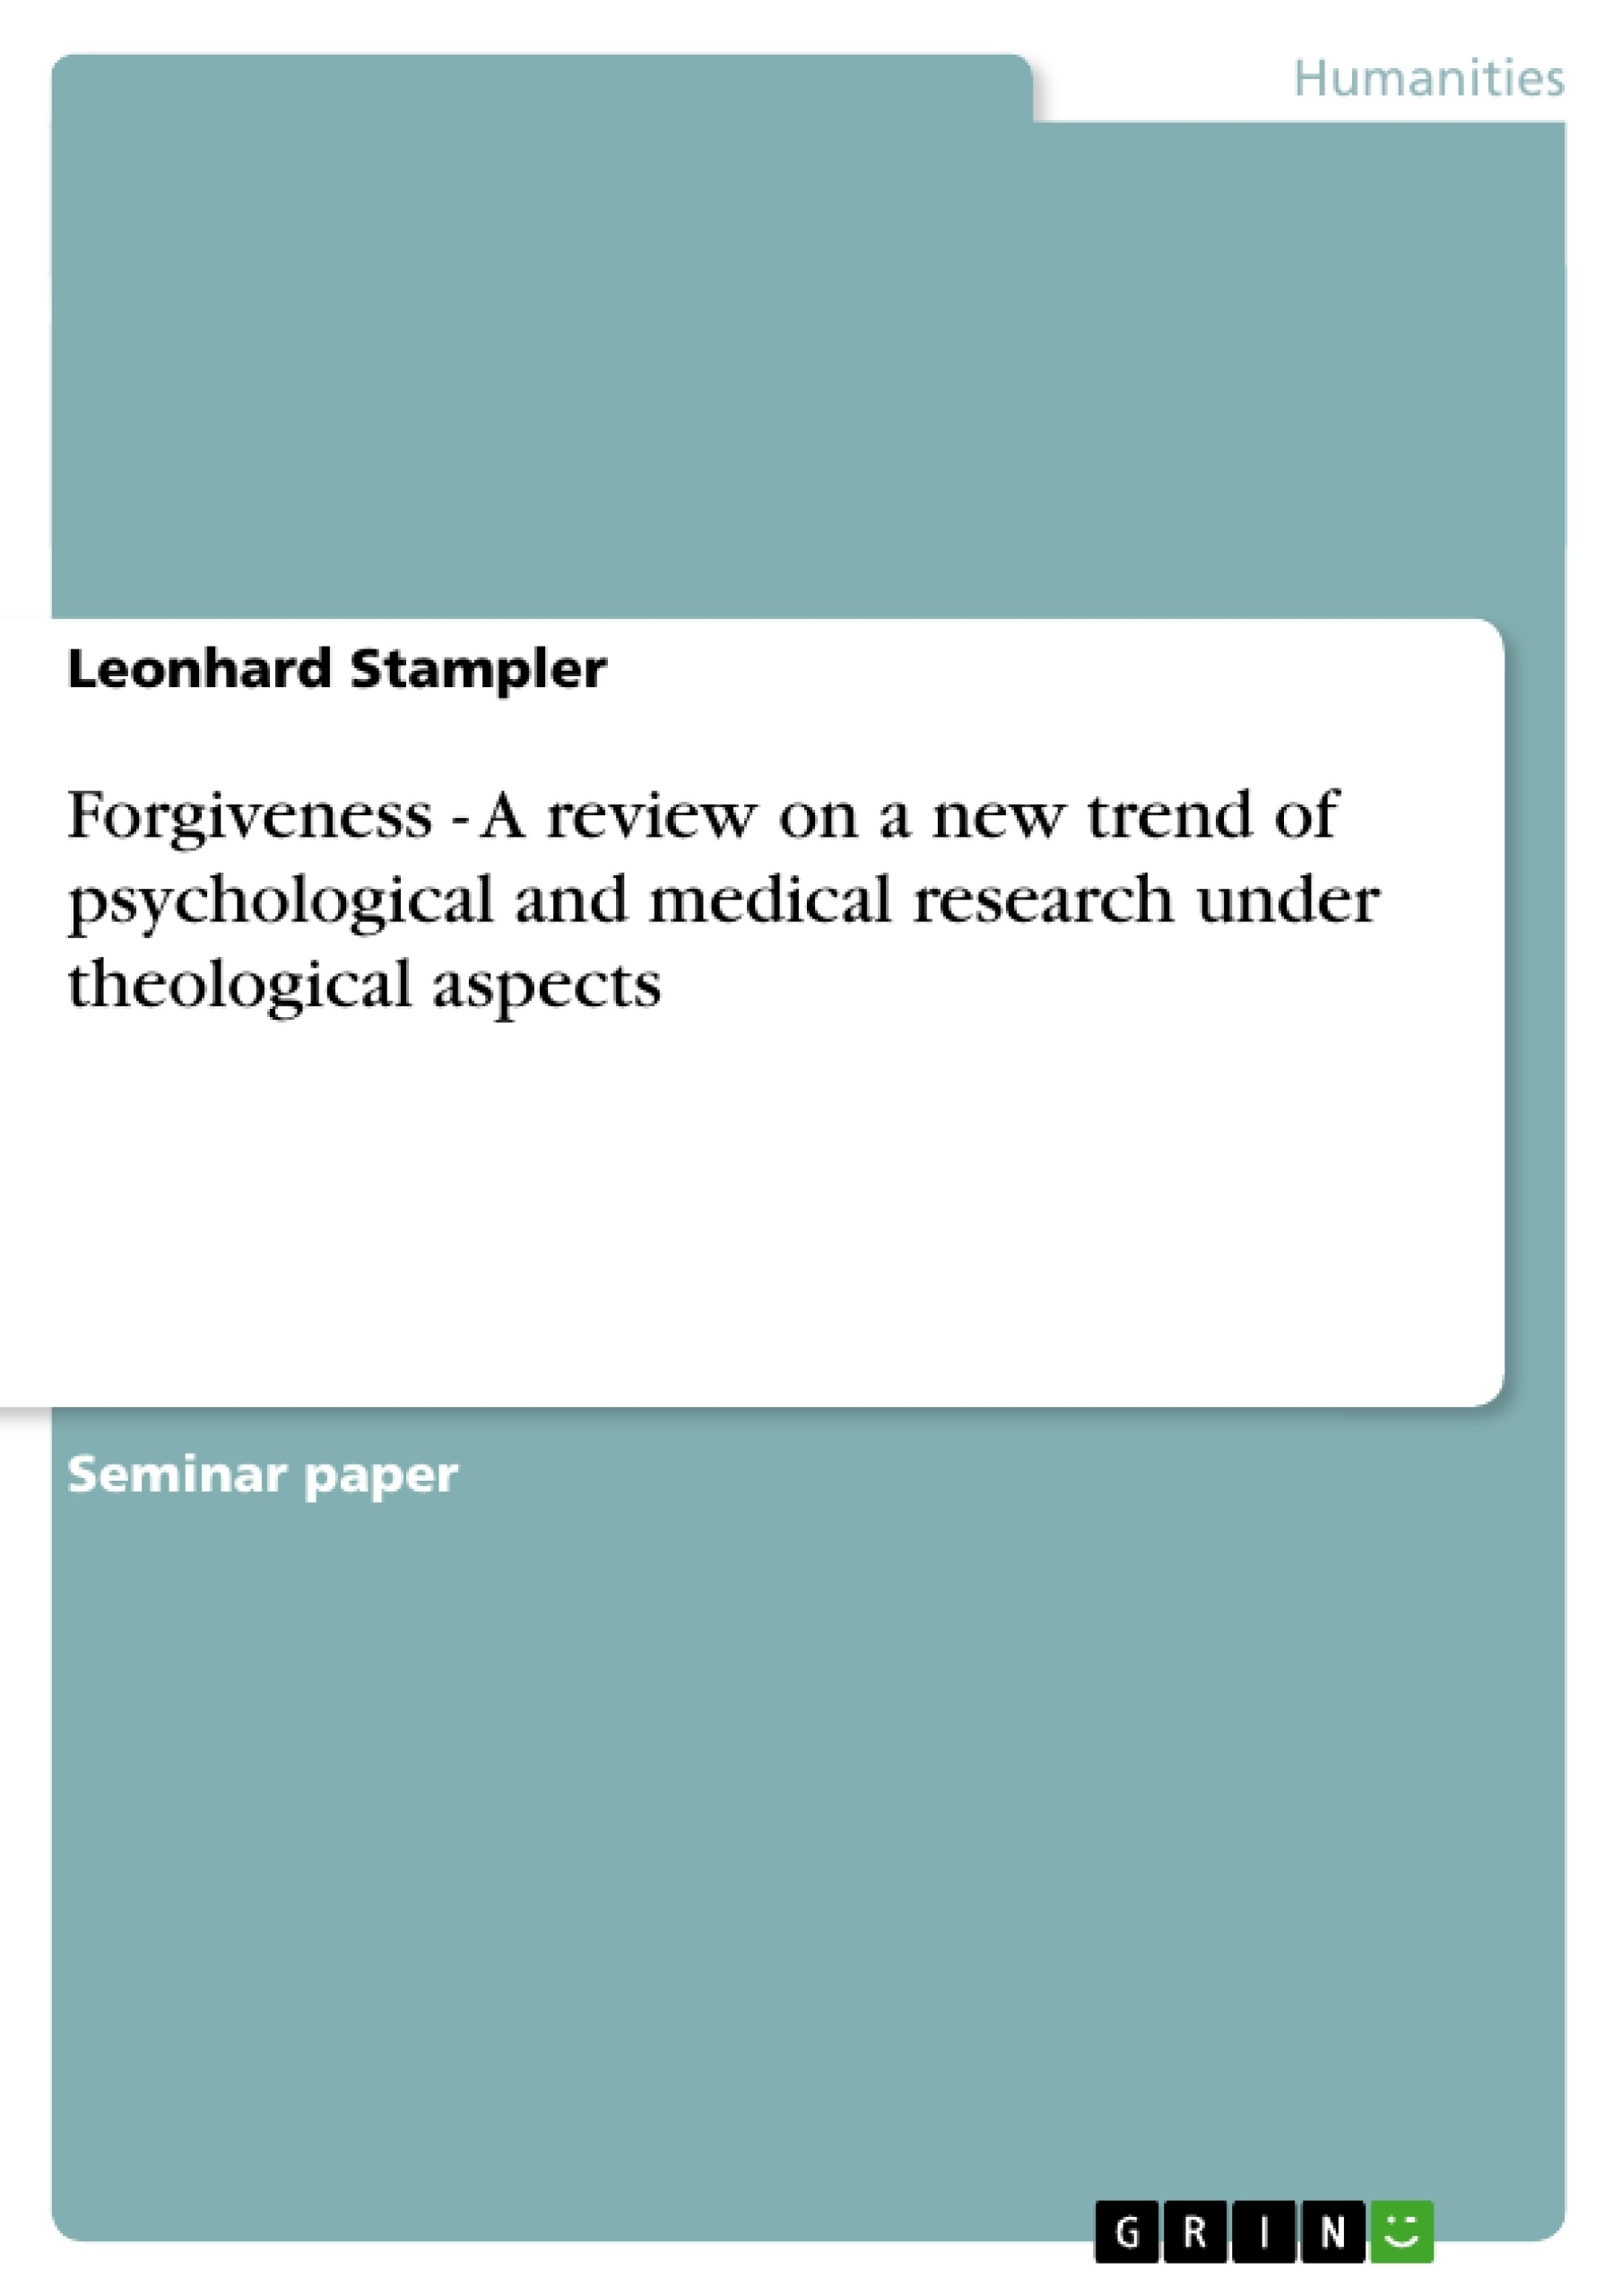 Title: Forgiveness - A review on a new trend of psychological and medical research under theological aspects